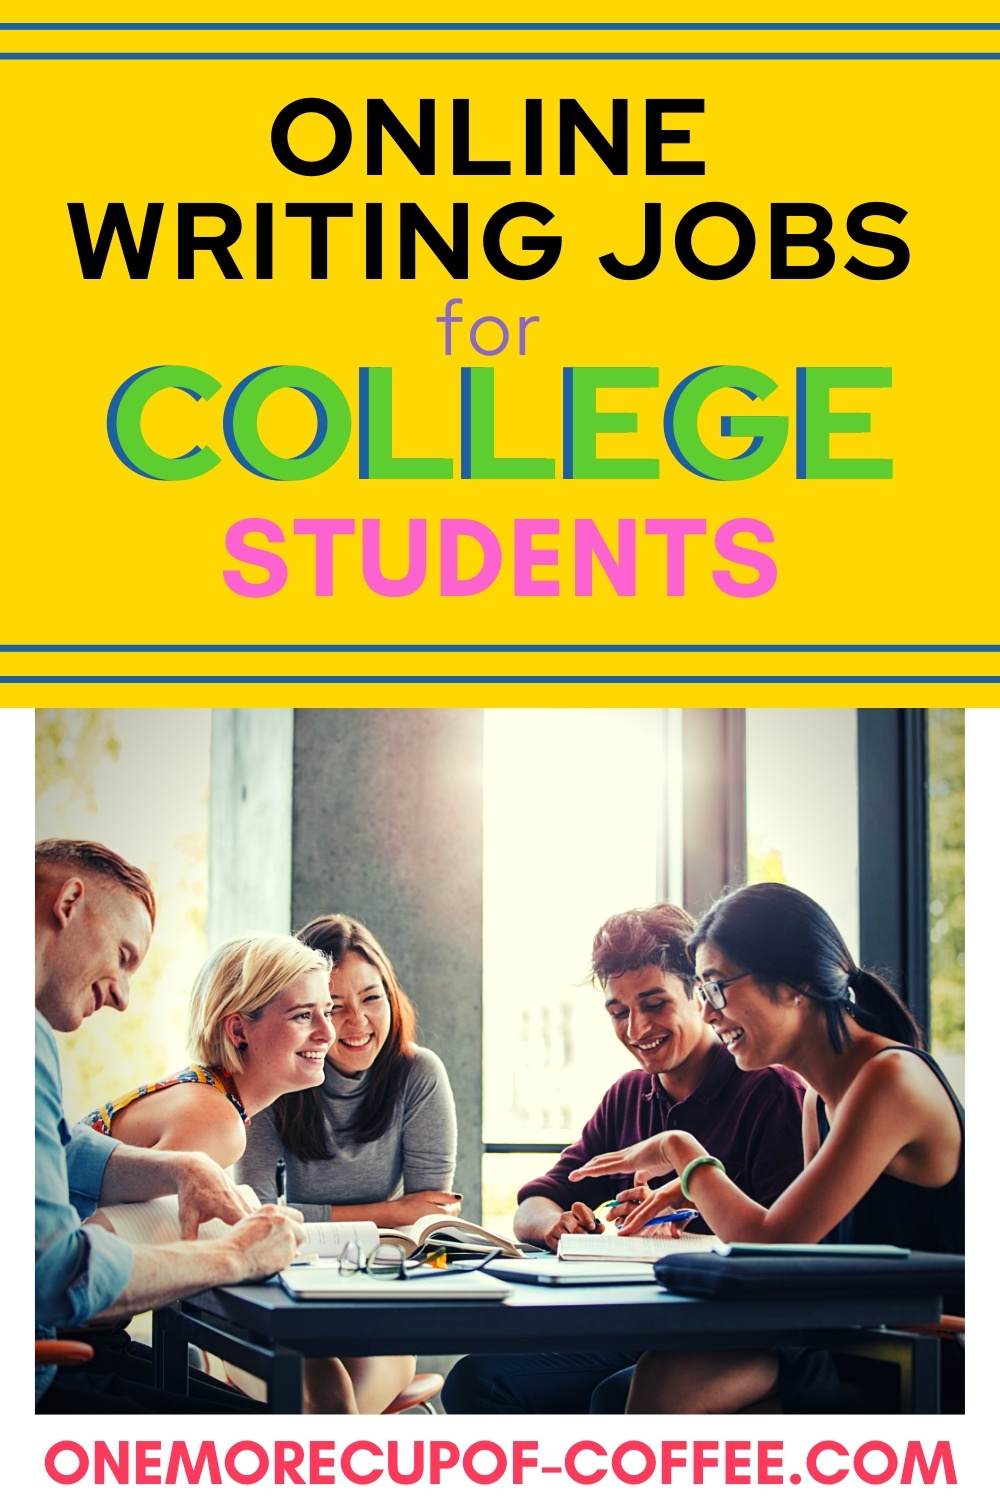 College students gathered around a table representing online writing jobs for college students